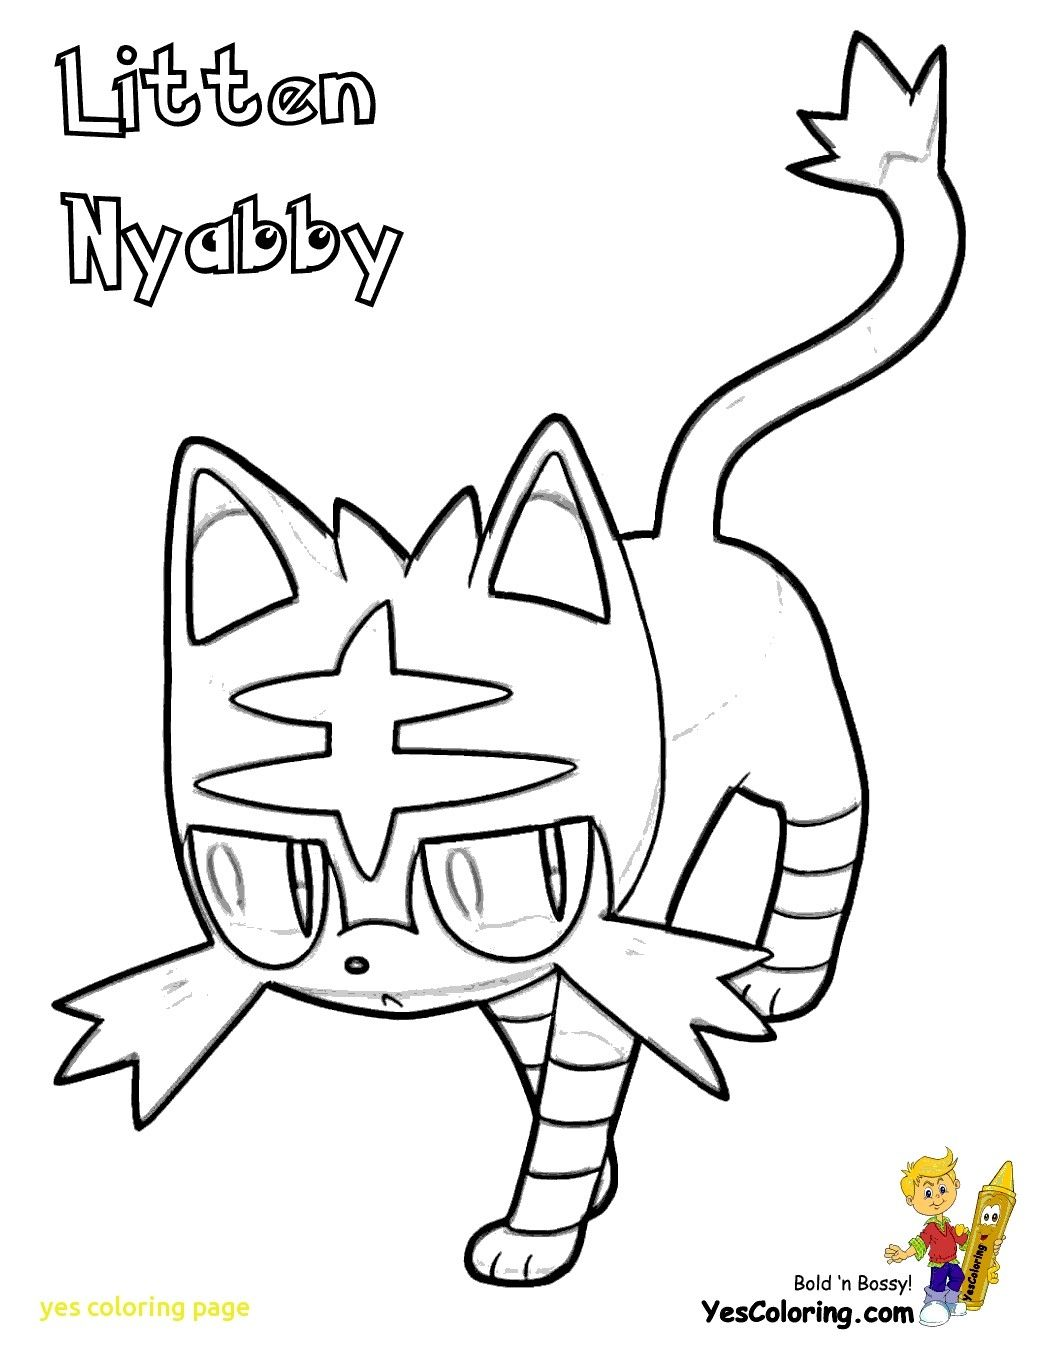 Pokemon Litten Coloring Pages To Print